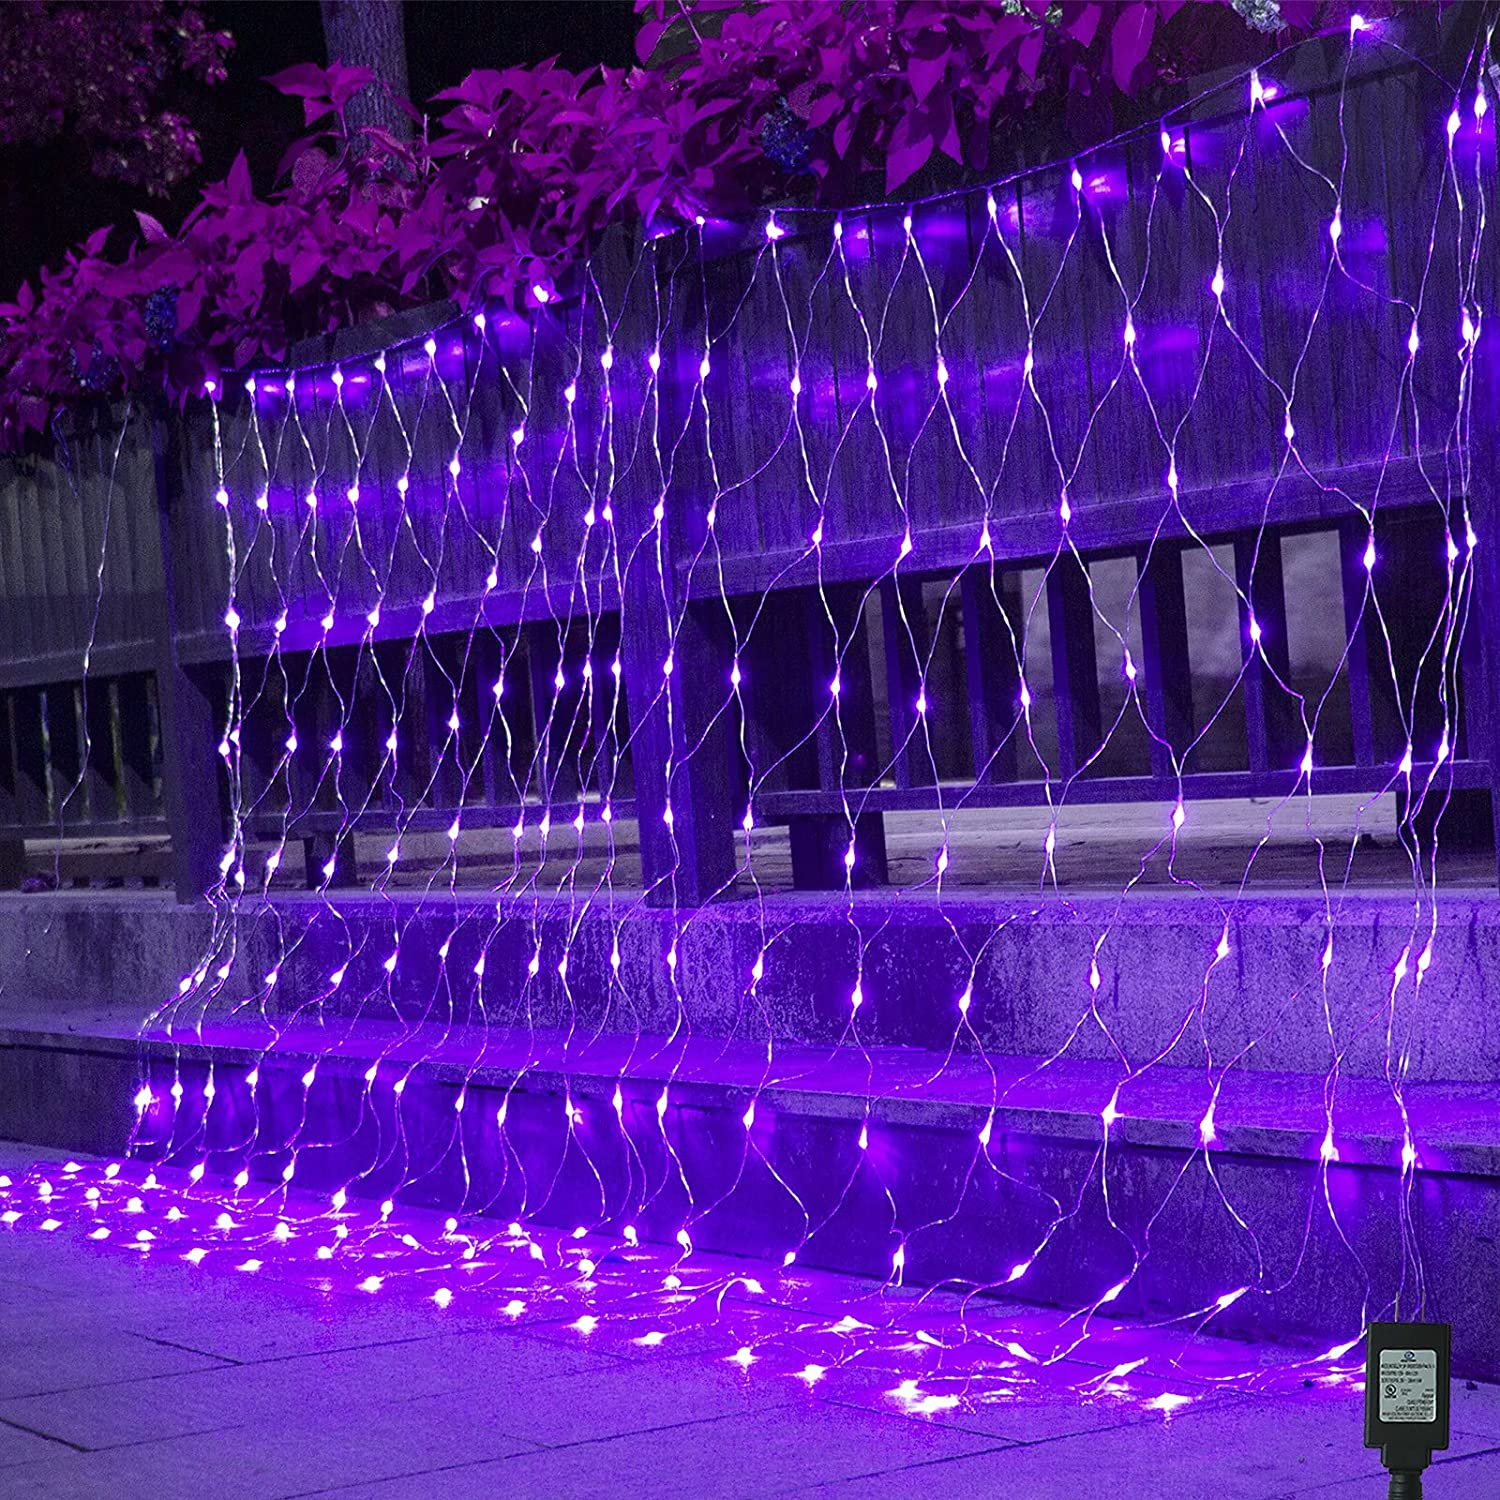 Christmas LED Net Lights, Purple Mesh Lights Plug in, 204 LED 9.8ft x 6.6ft Connectable Curtain Fairy Lights for Tree Wrap, Bushes, Outdoor, Christmas, Halloween